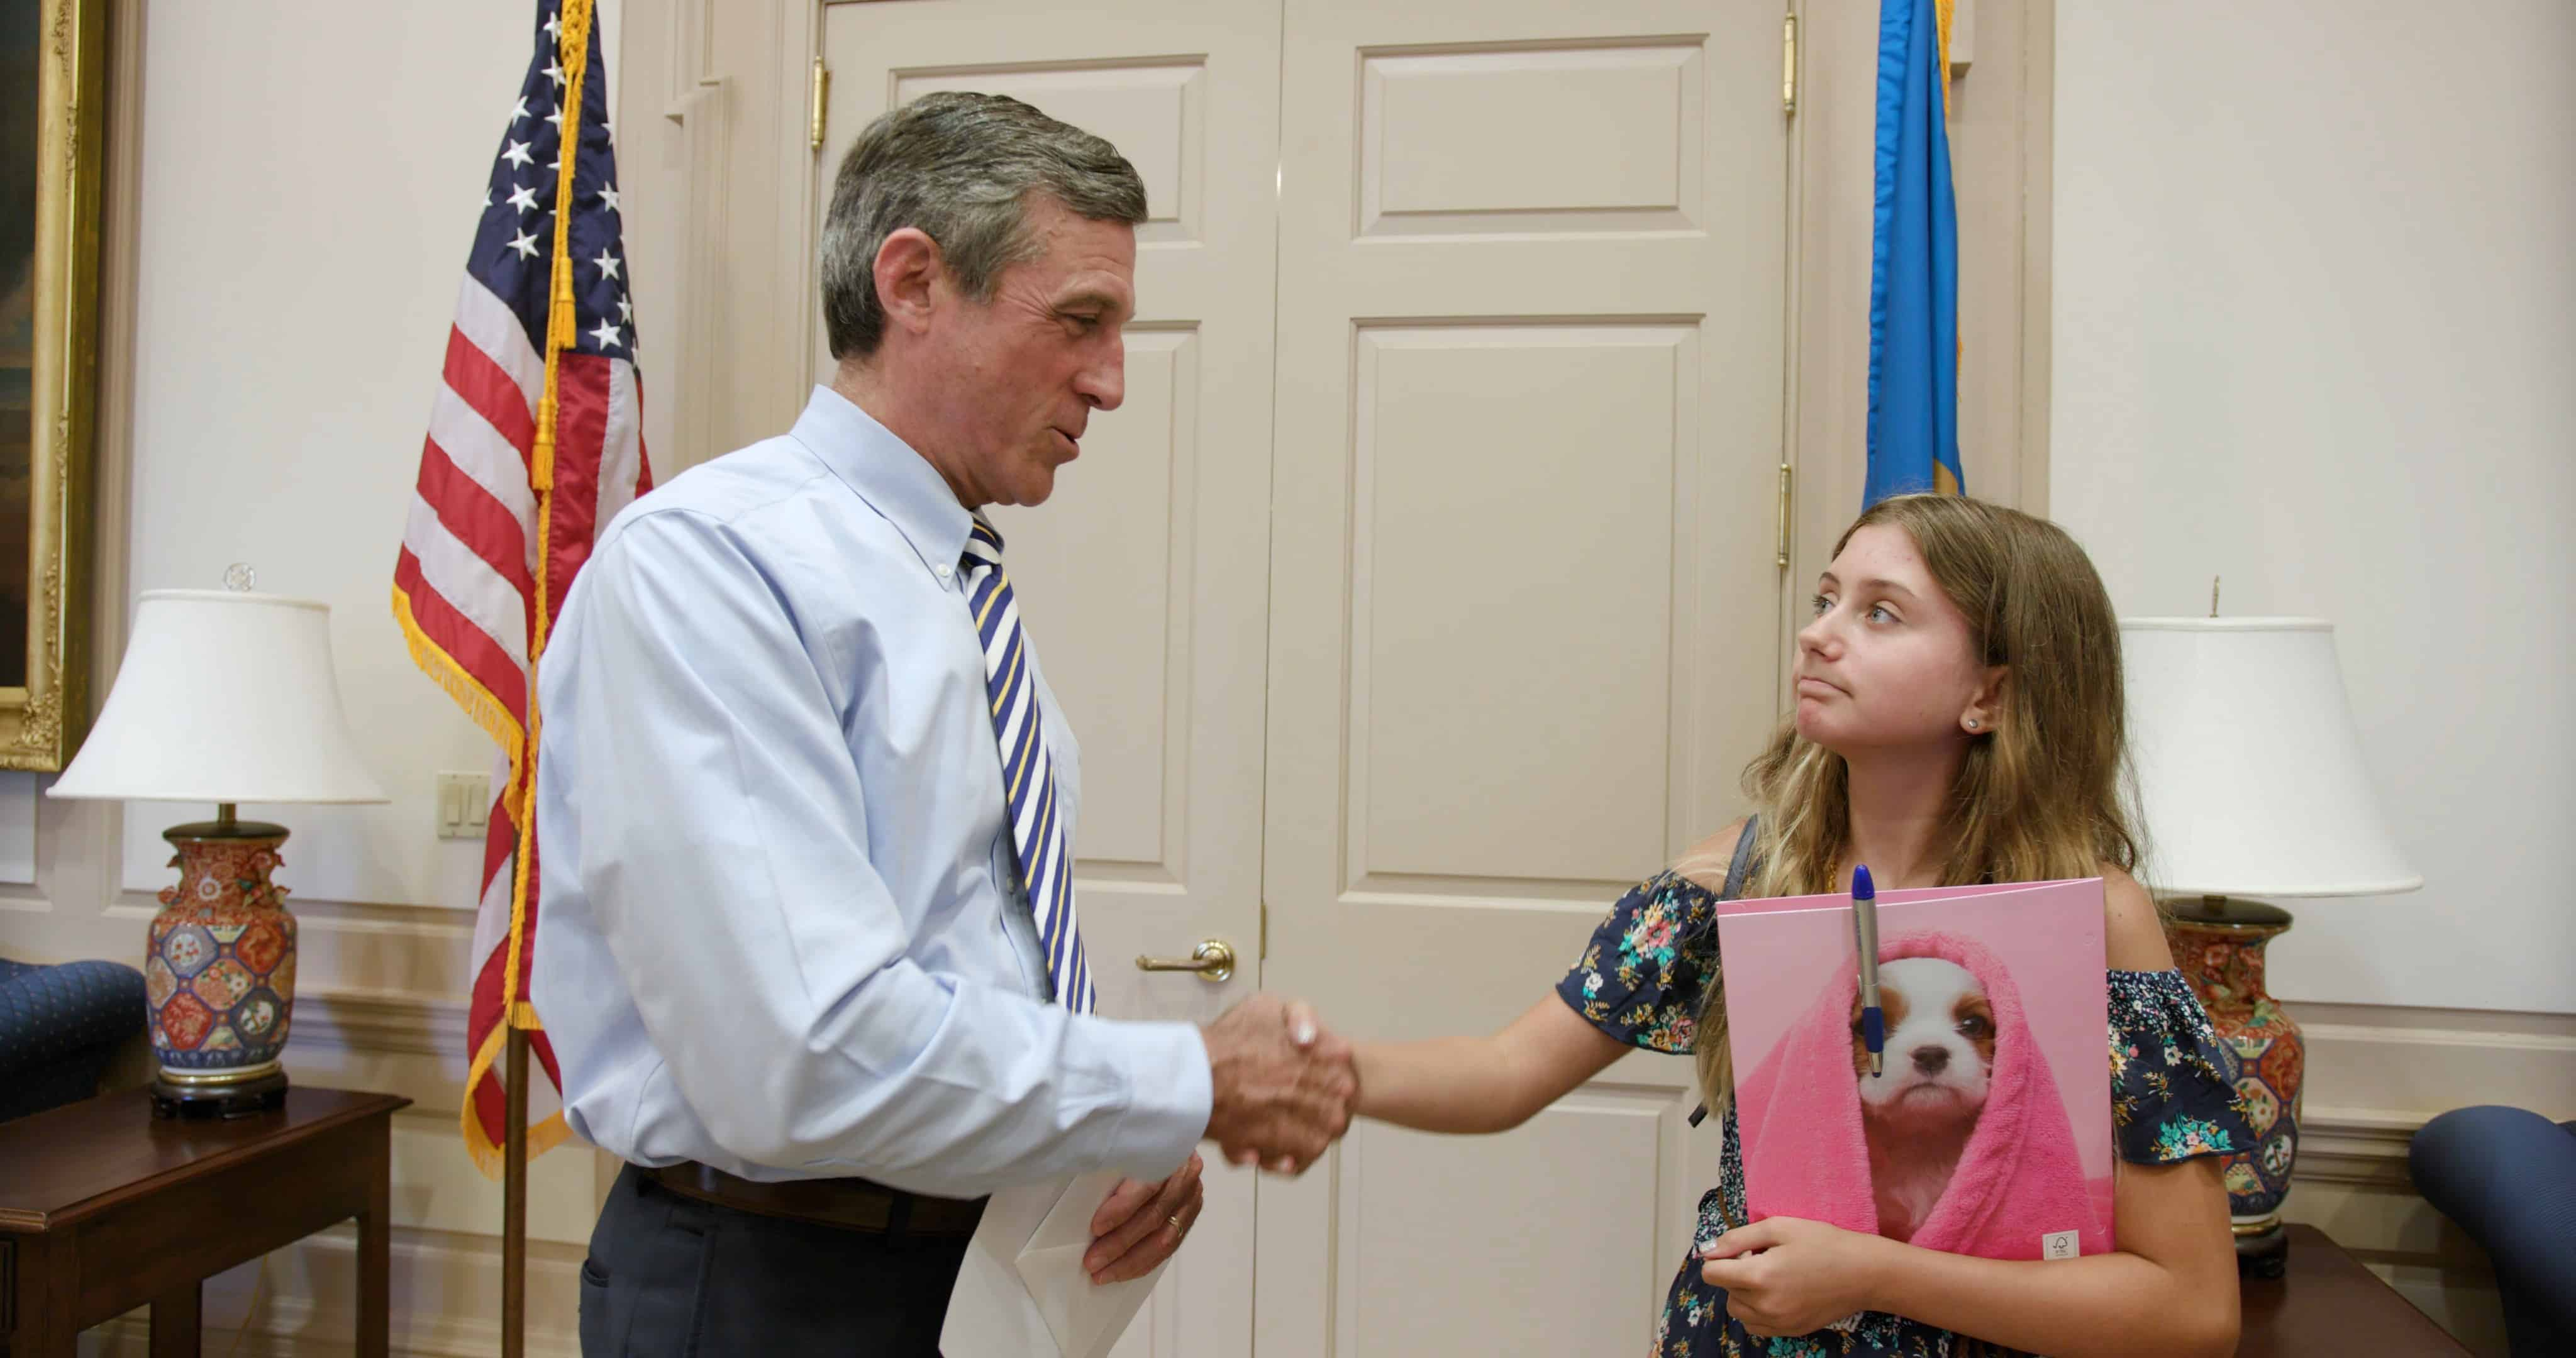 Rylie shakes hands with governor